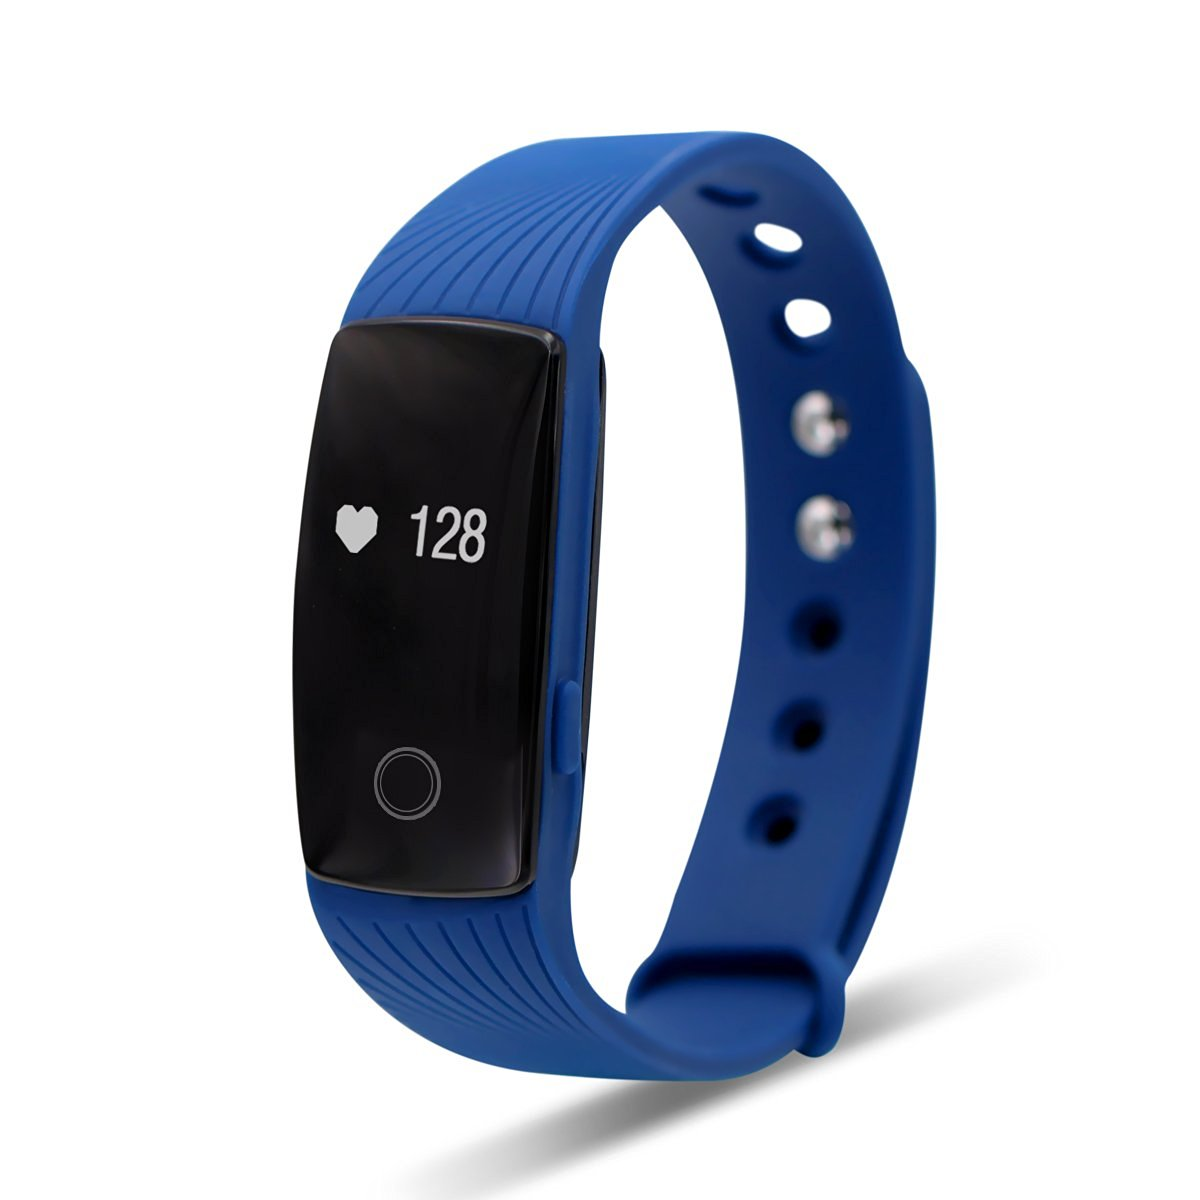 Tecomax Sport Bluetooth Smart Bracelet Wrist Band with Heart Rate Monitoring Anti- Lost Remote Camera Pedometer for Android & IOS iPhone Smart Phone - Navy Blue